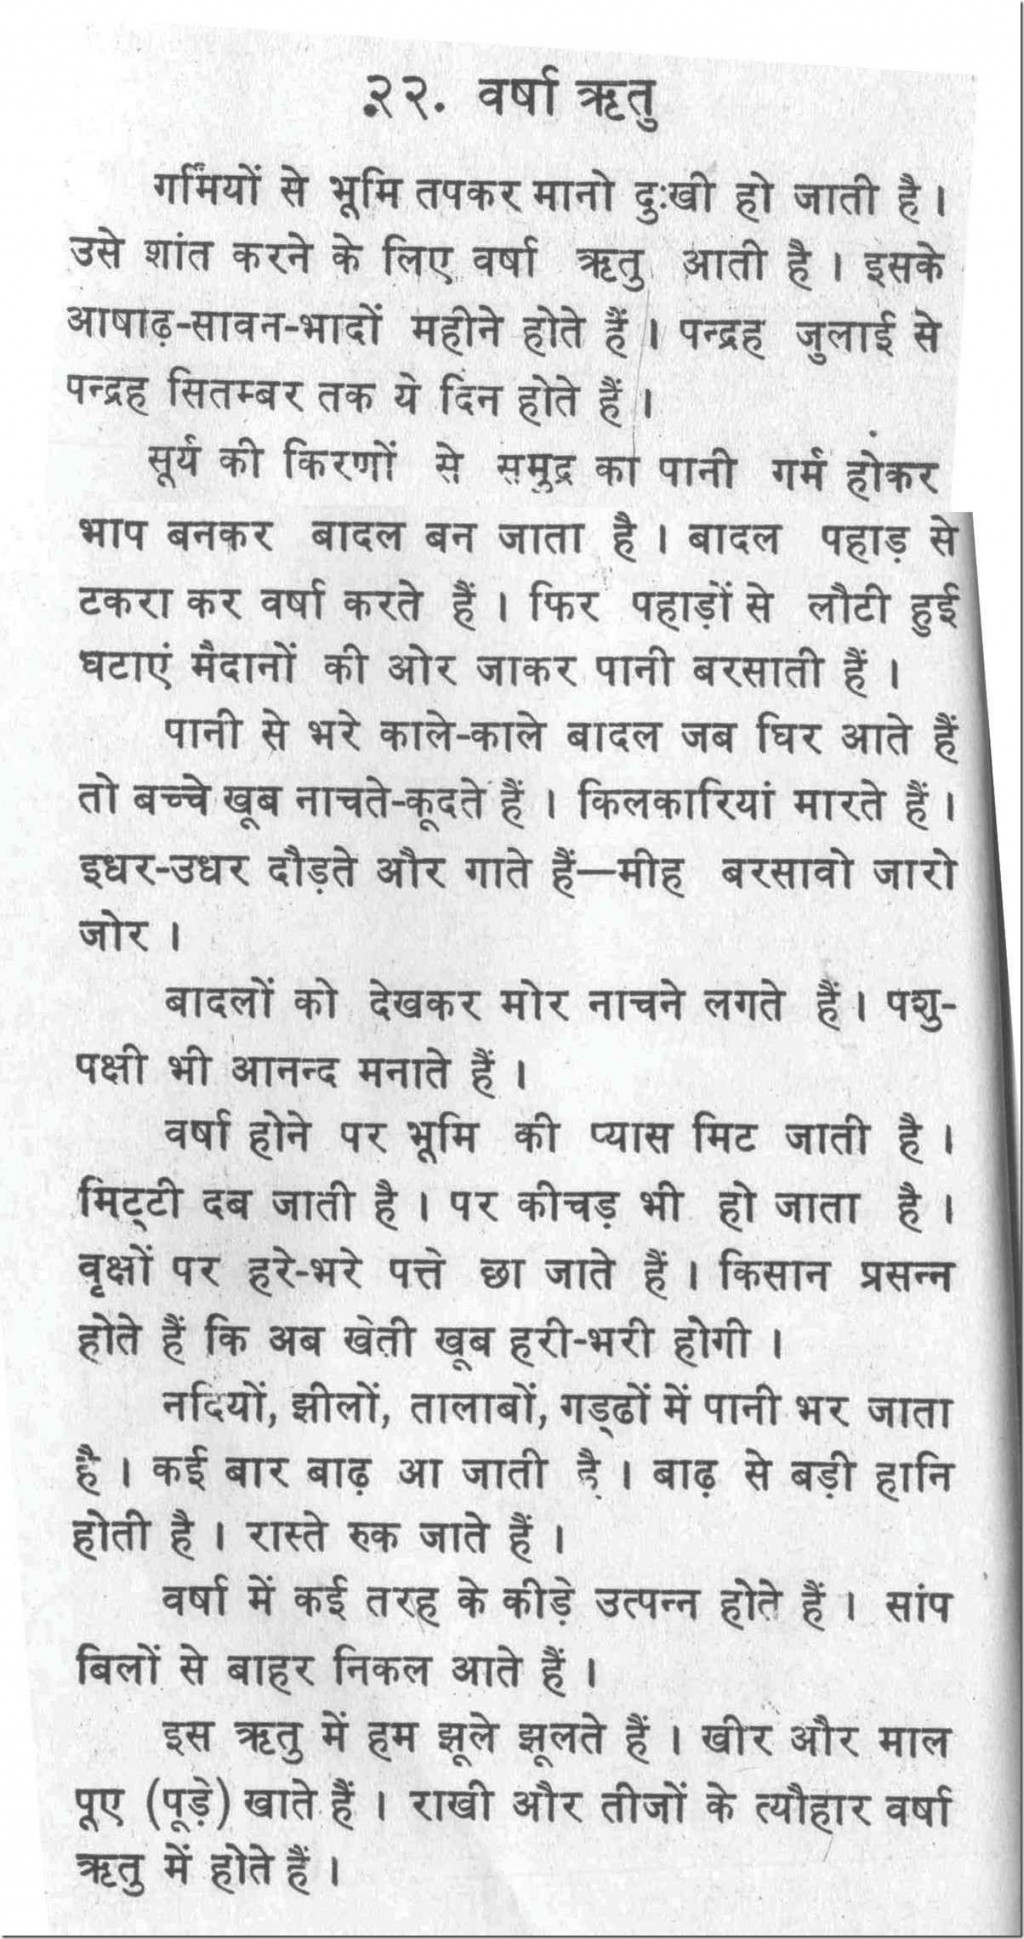 015 Summer Essay 1555027238 On Season In Hindi Unforgettable Vacation Class 2 Urdu Conclusion Large